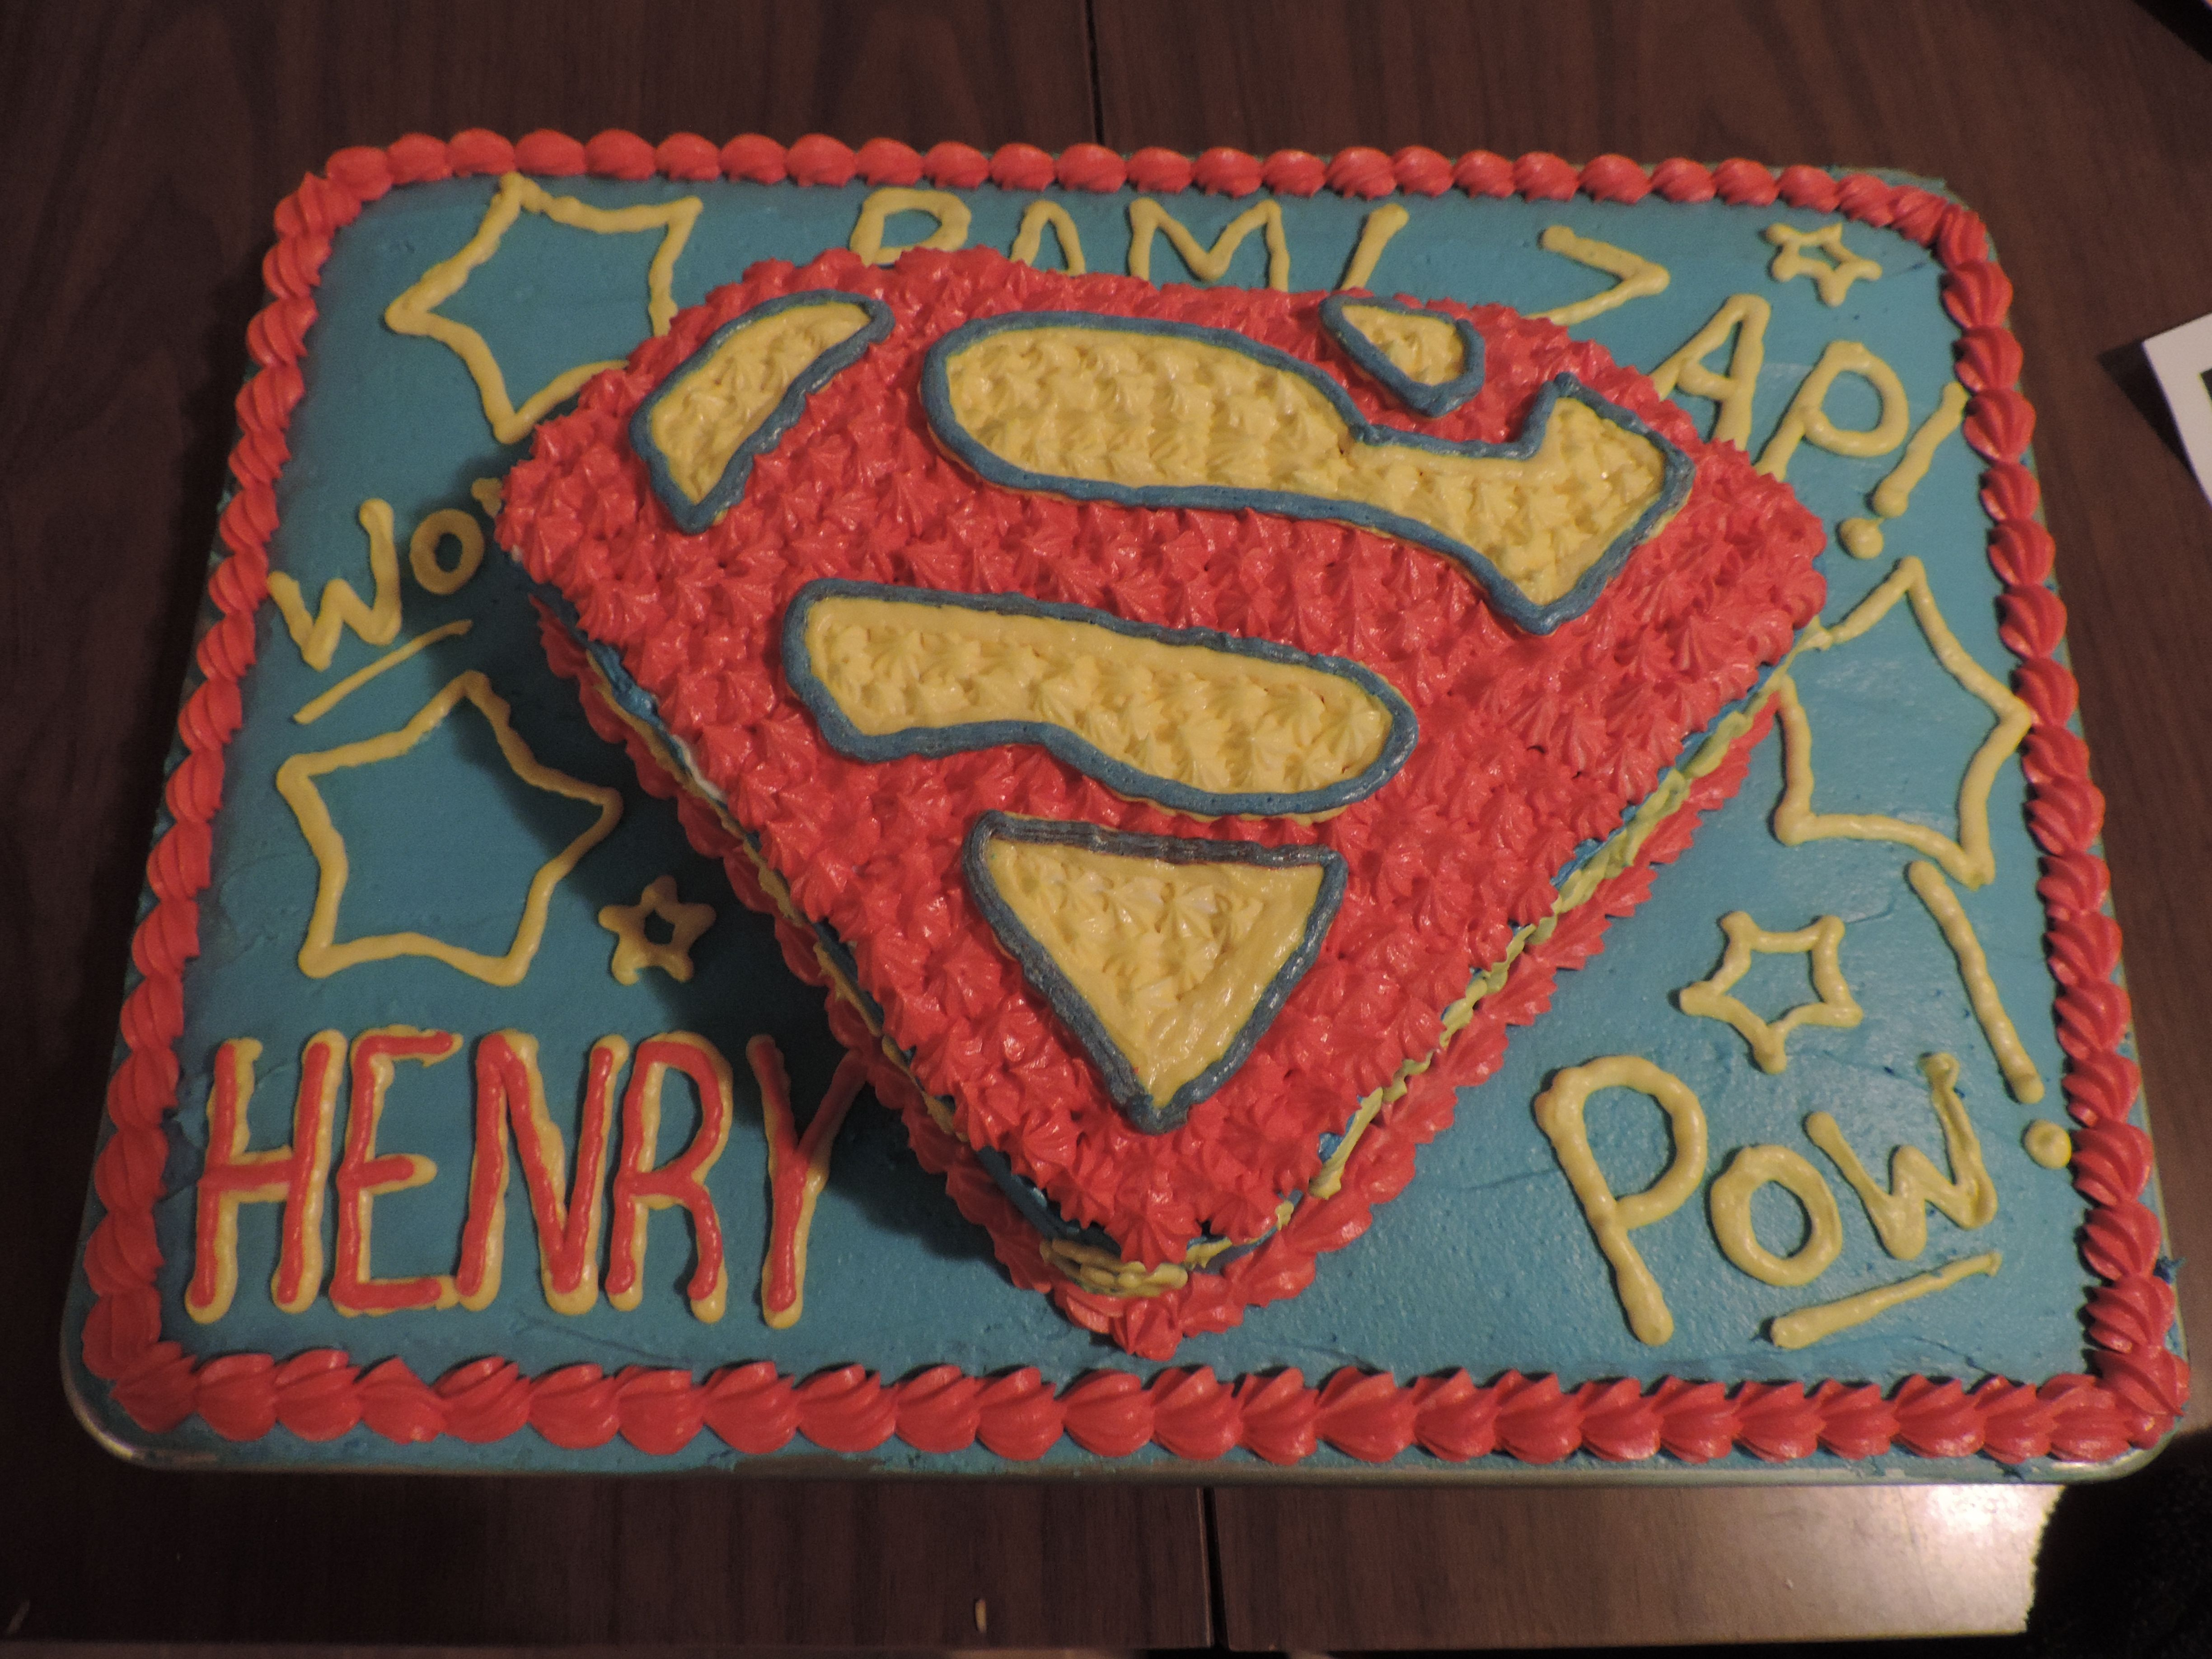 The Superman Cake Not Able To Leap Tall Buildings In A Single